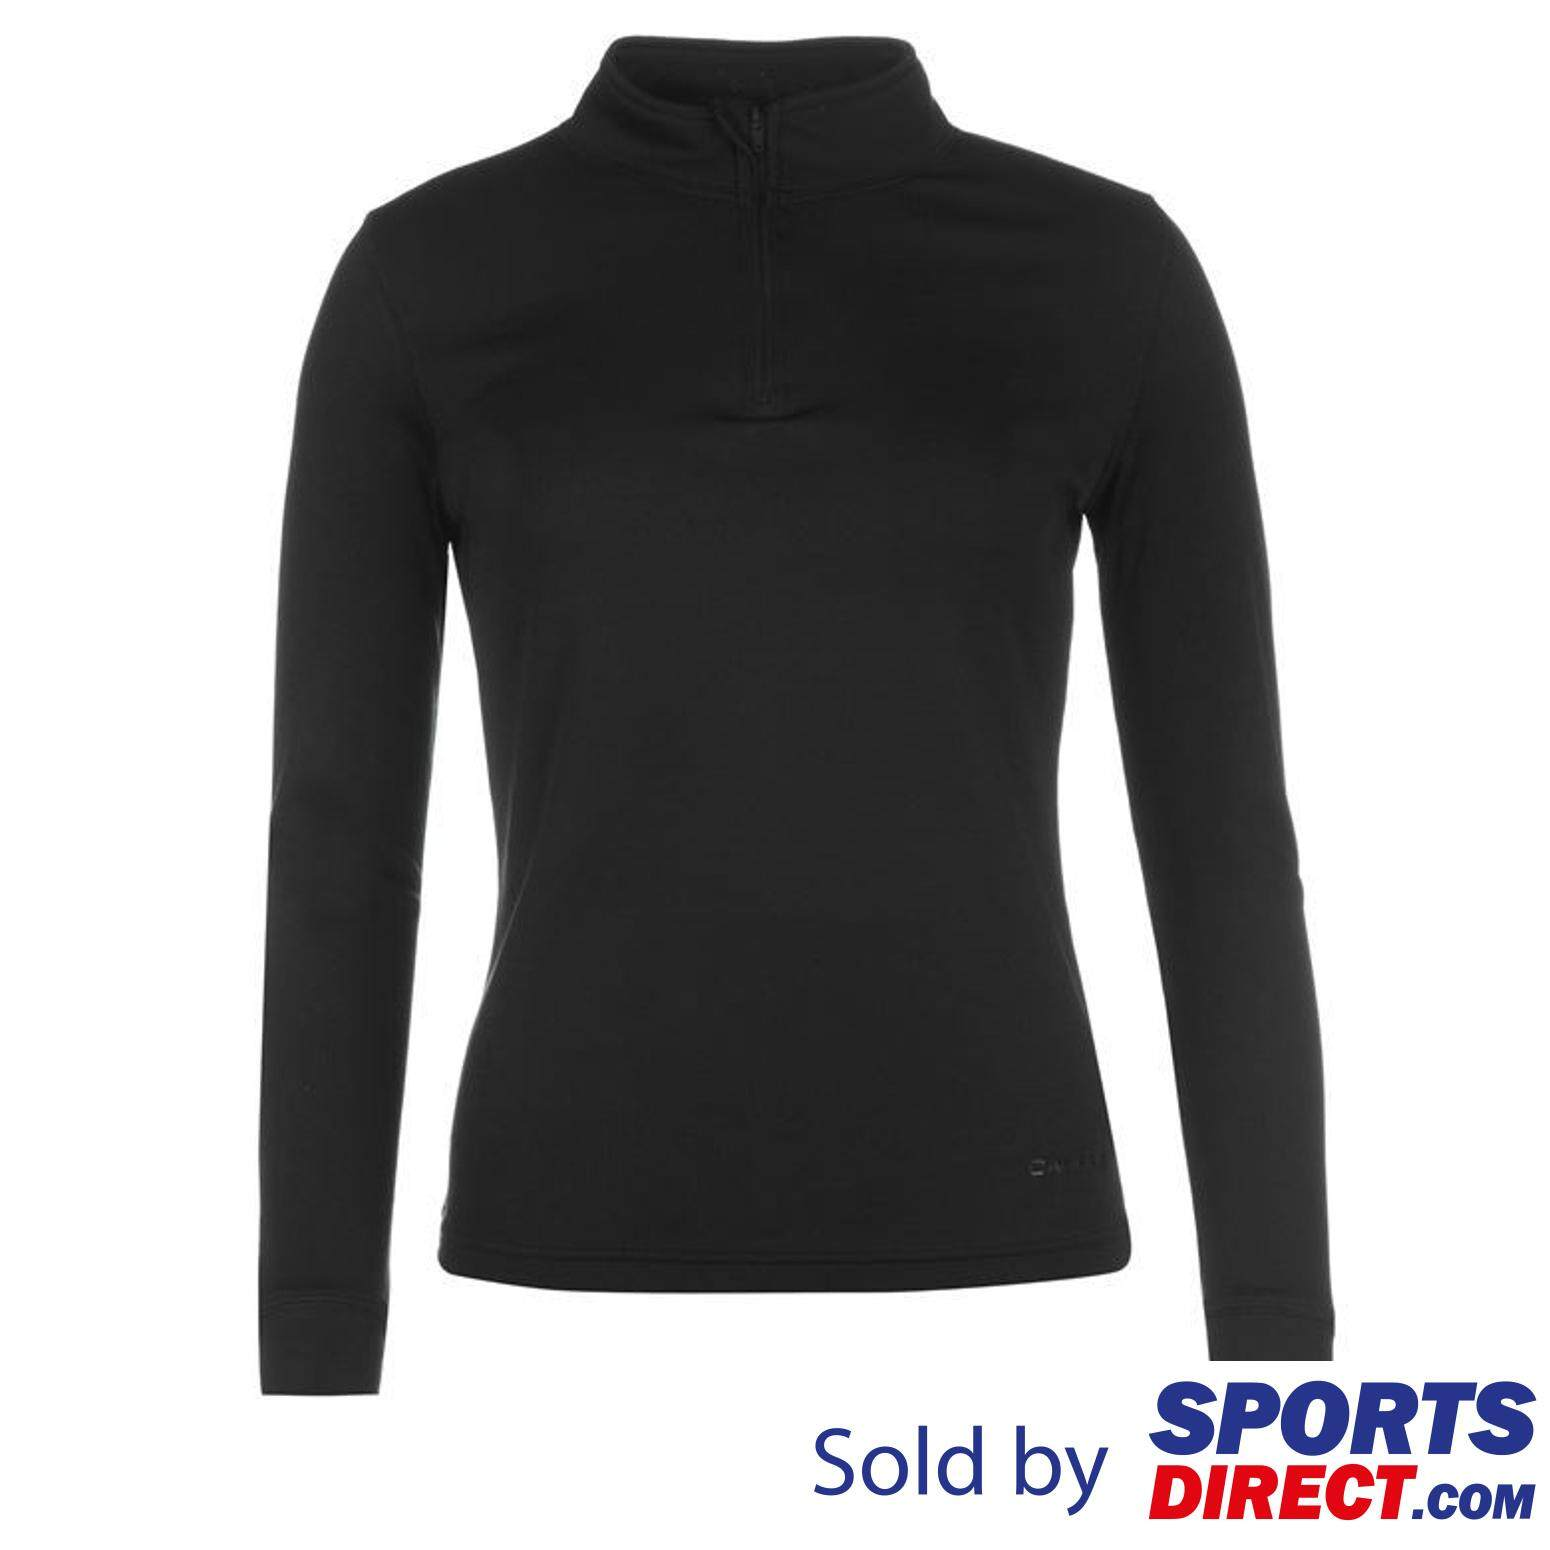 Campri Womens Thermal Zip Top (black) By Sports Direct Mst Sdn Bhd.